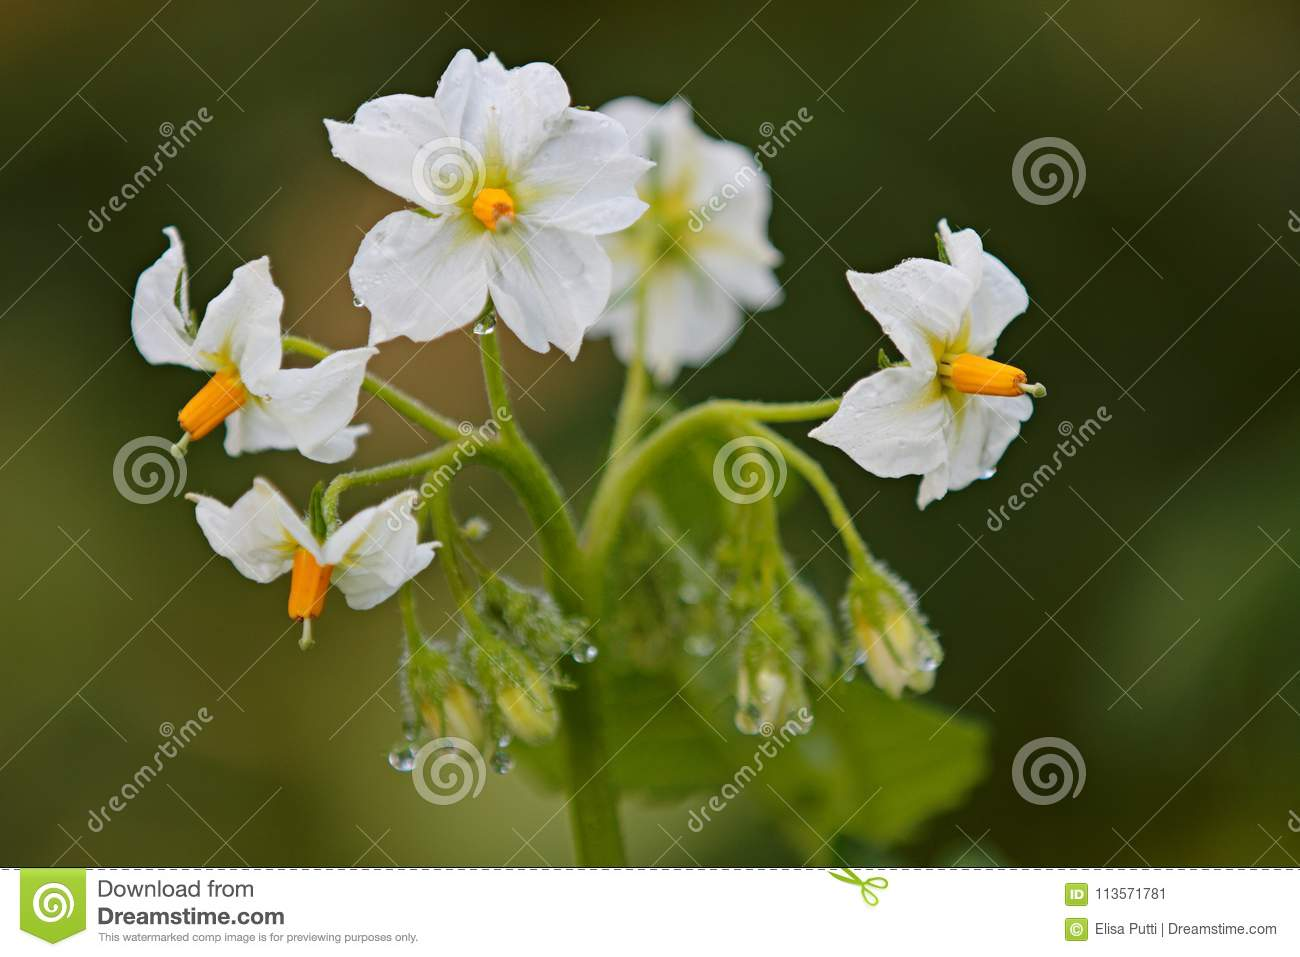 Potato plant blooms with pure white flowers stock image image of download potato plant blooms with pure white flowers stock image image of toxic bloom mightylinksfo